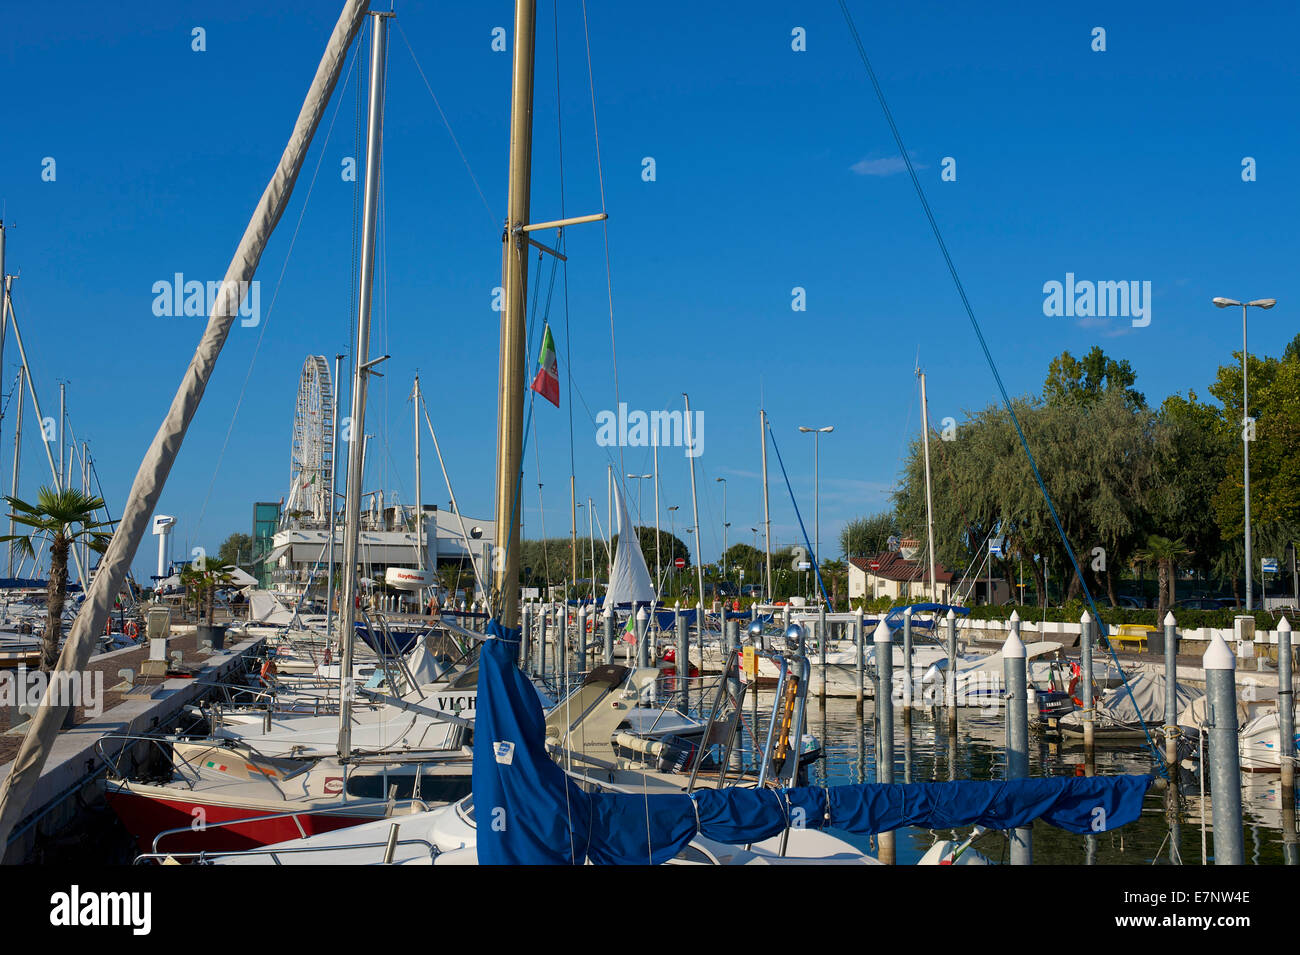 Adriatic, Italy, Europe, outside, day, nobody, Emilia-Romagna, Rimini, yacht harbour, harbour, port, boats, sail - Stock Image